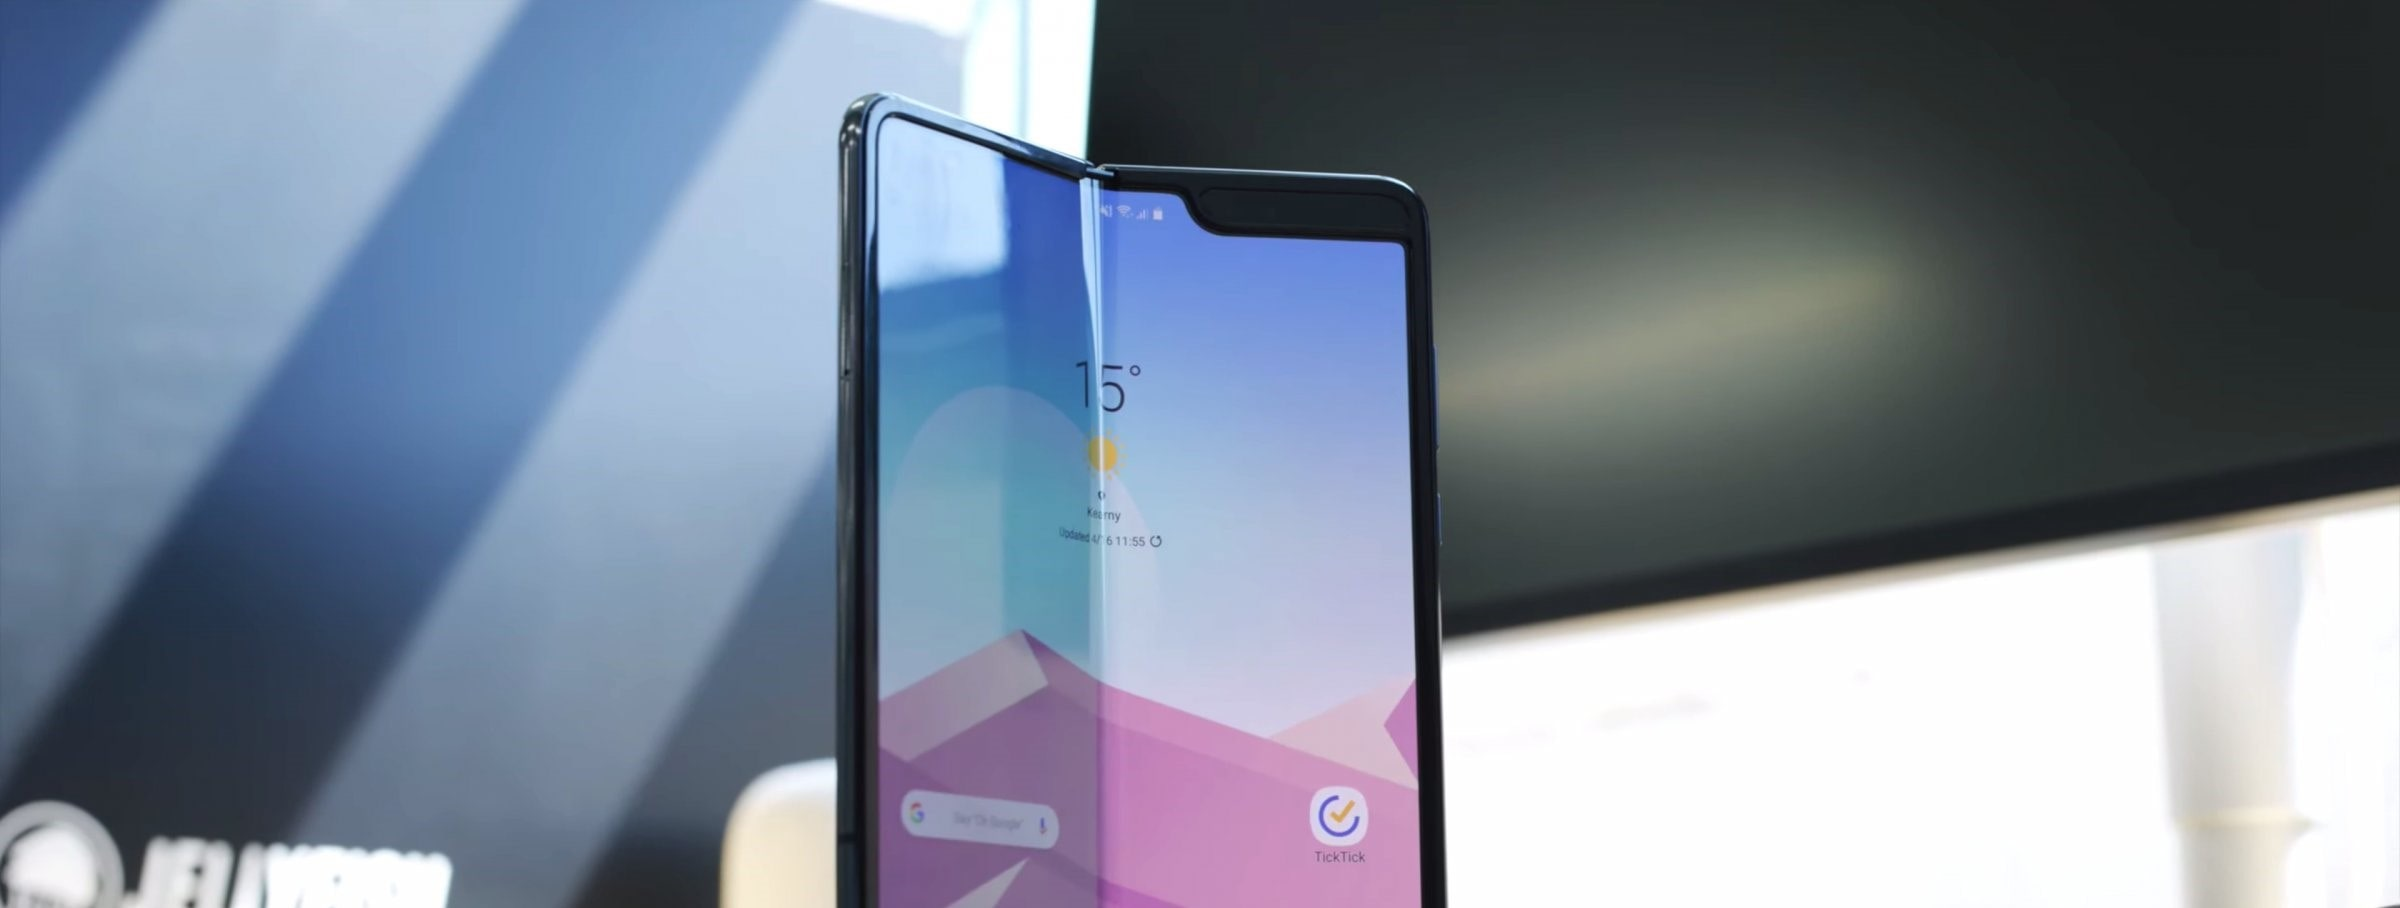 Take a peek inside the Galaxy Fold